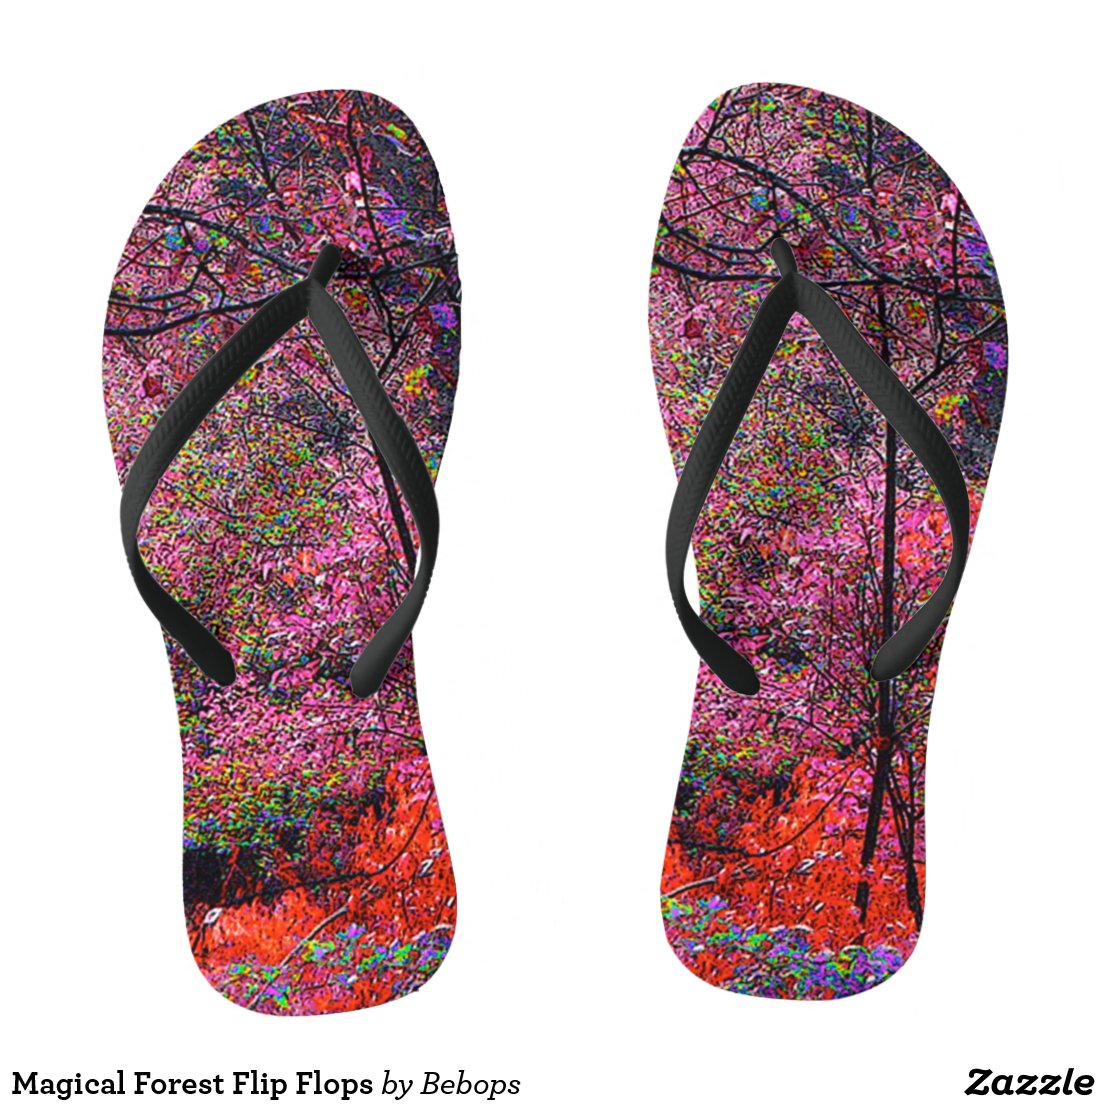 Magical Forest Flip Flops